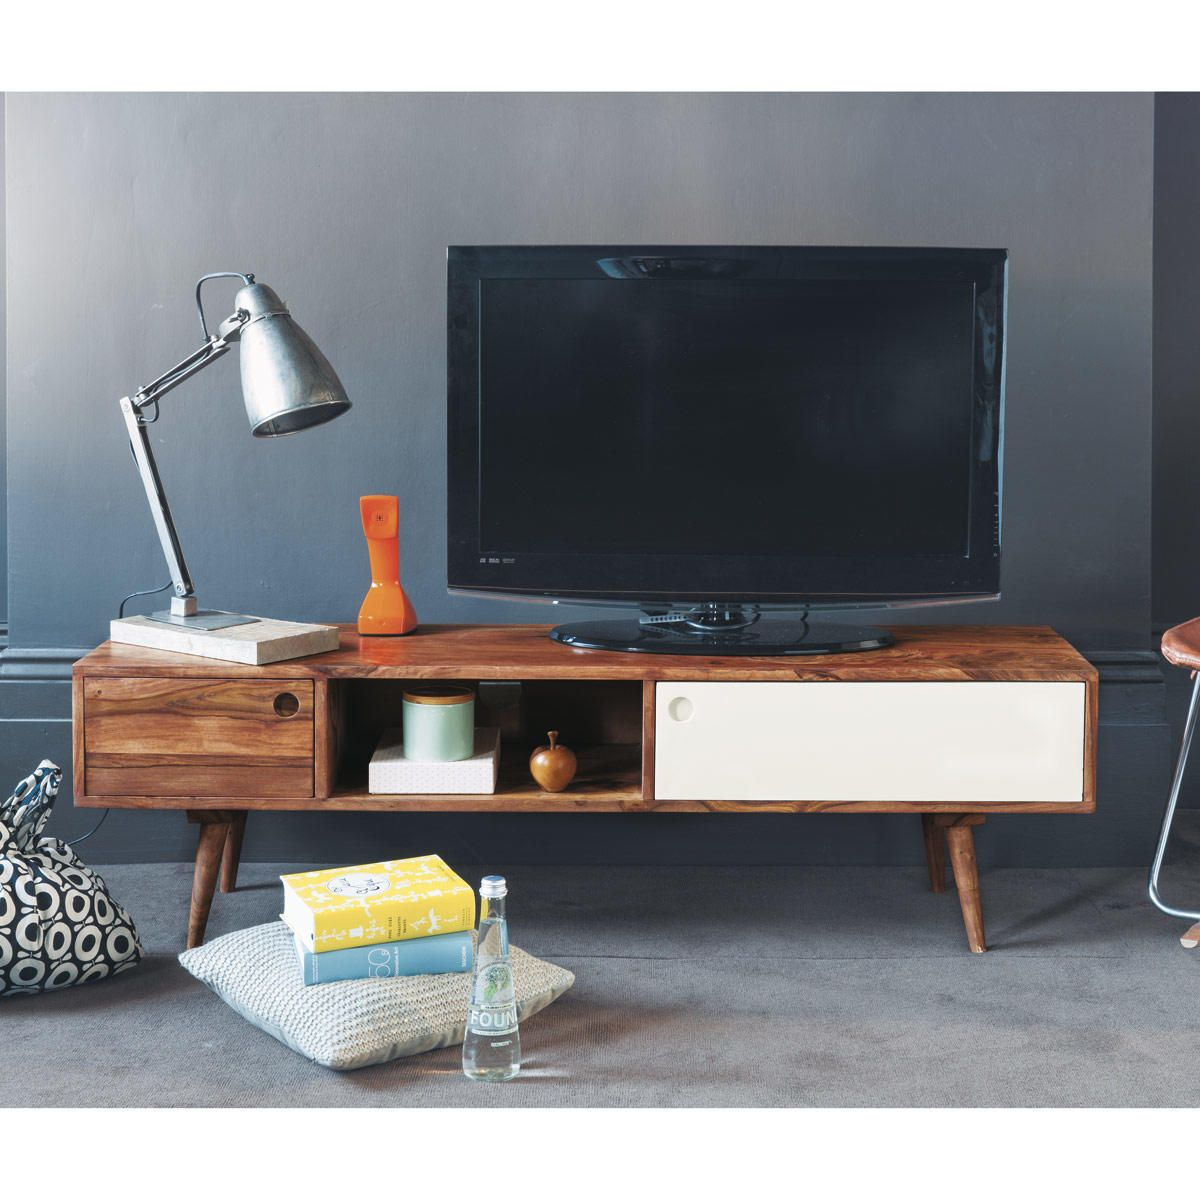 Maison Du Monde Andersen sheeshamhouten vintage tv-meubel | tv decor, tv furniture